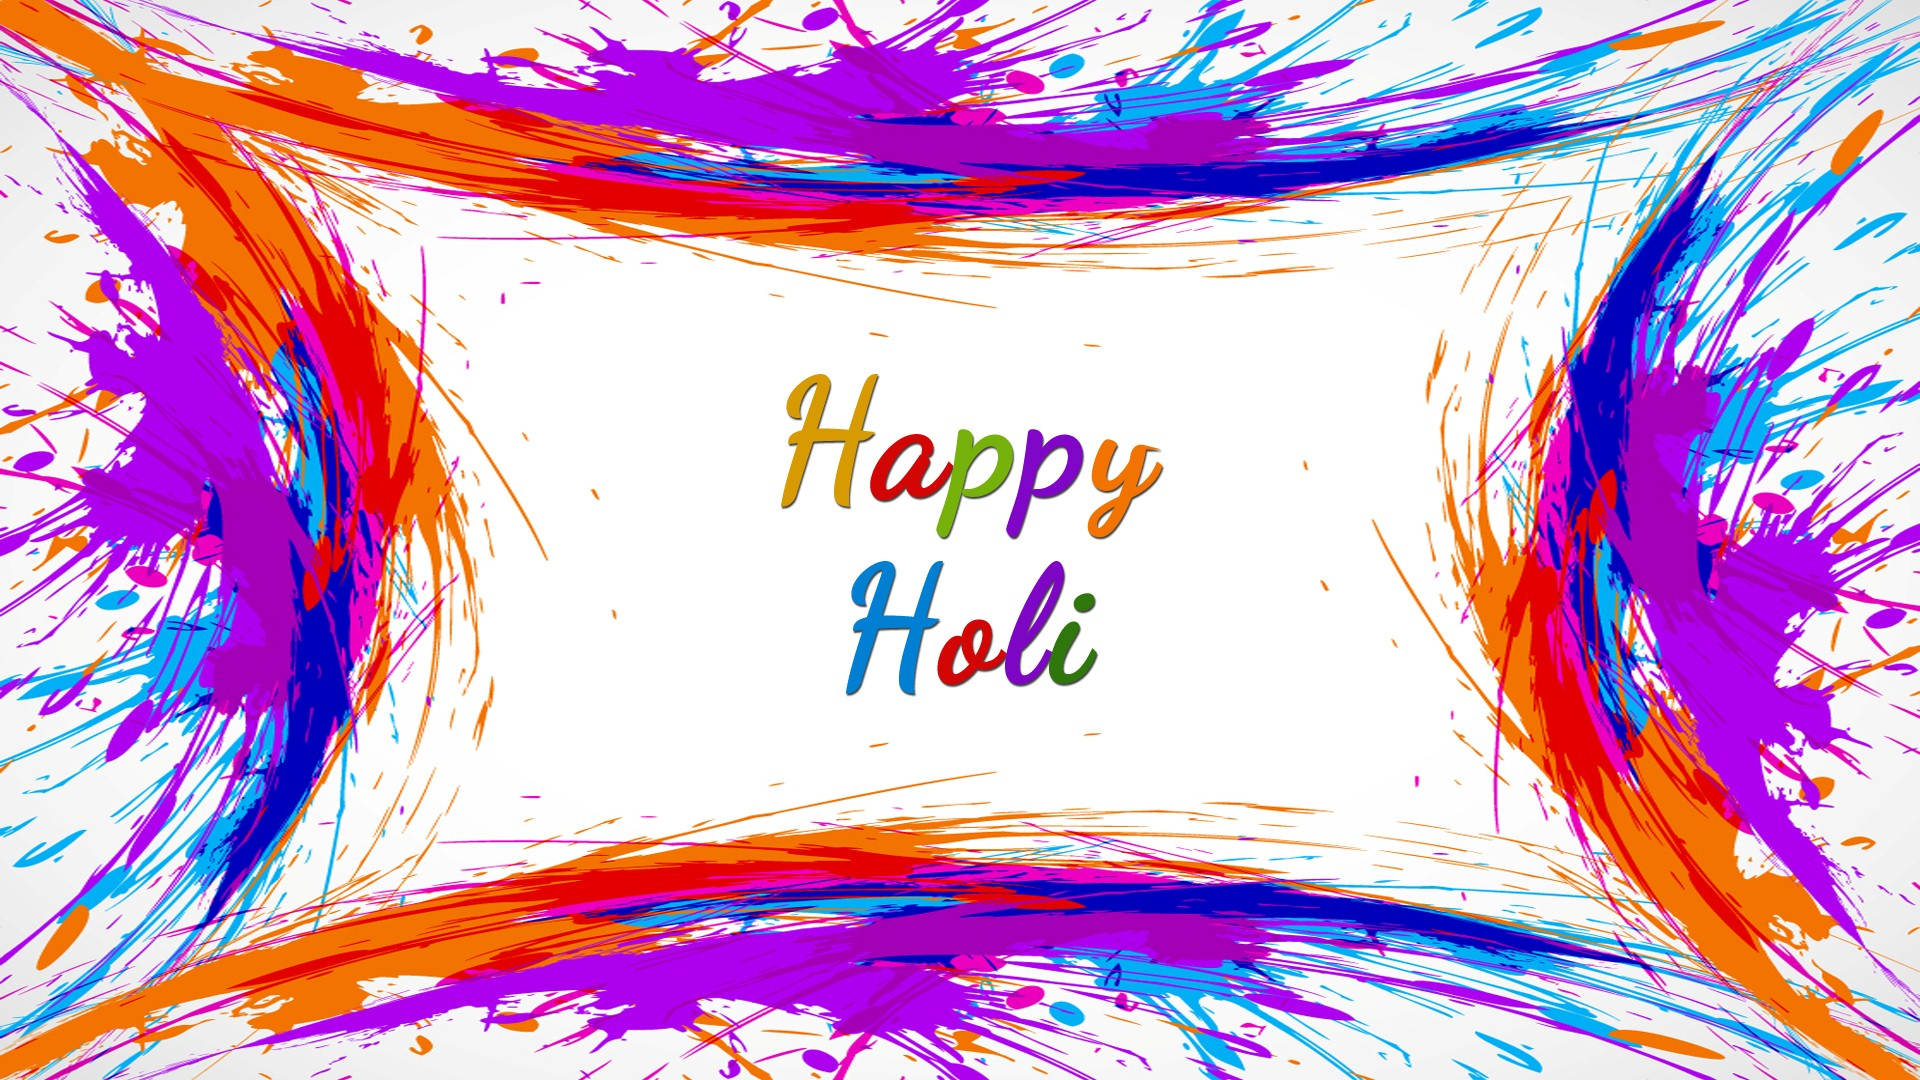 Happy Holi Colorful HD Image HD Wallpapers 1920x1080